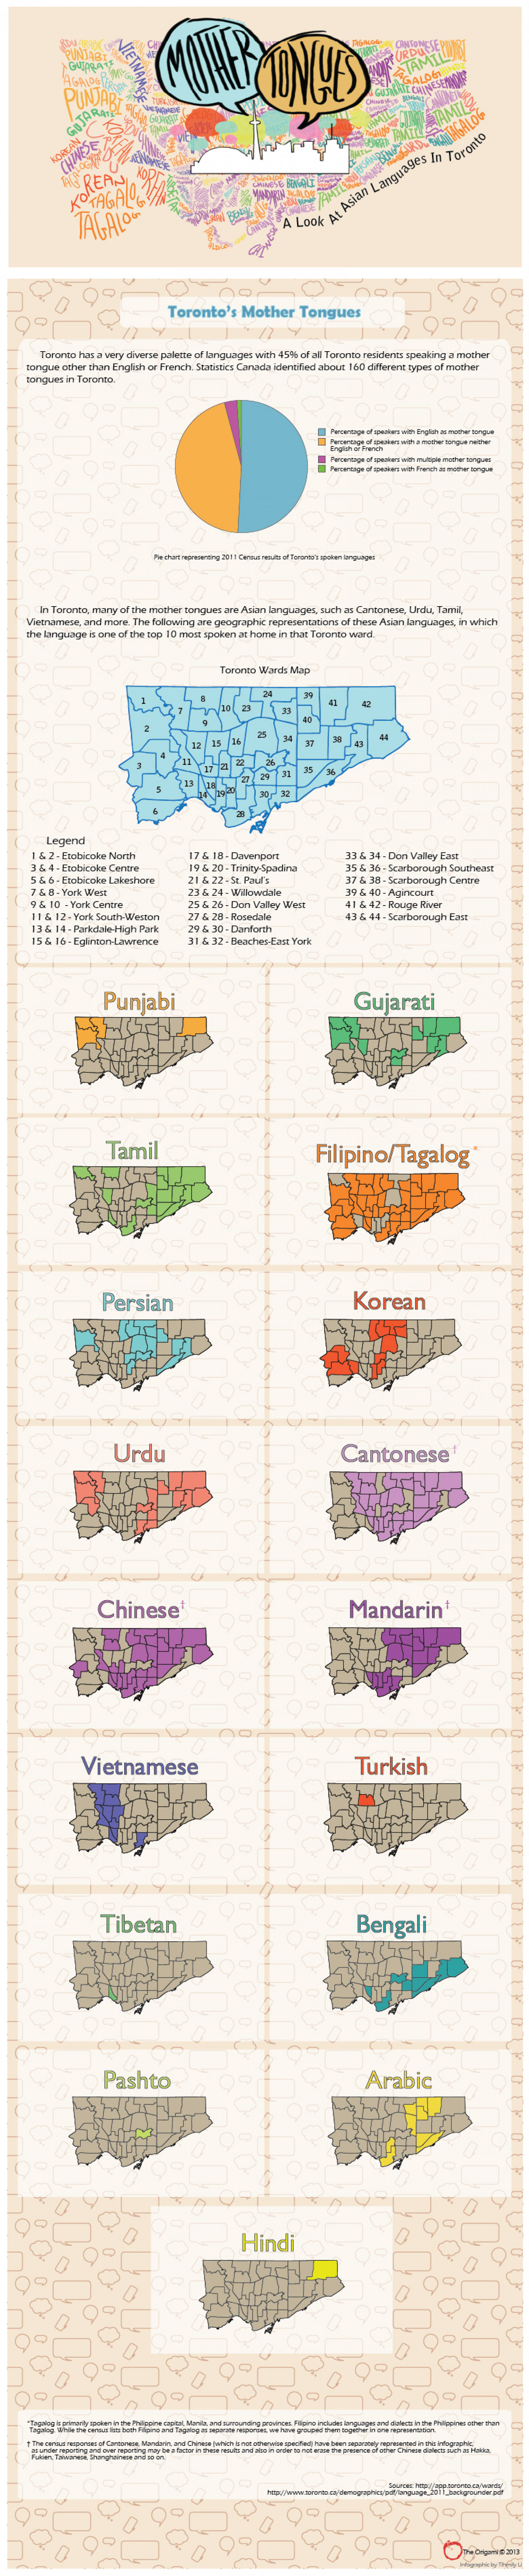 Asians speak up: Mother tongues in Toronto  Infographic